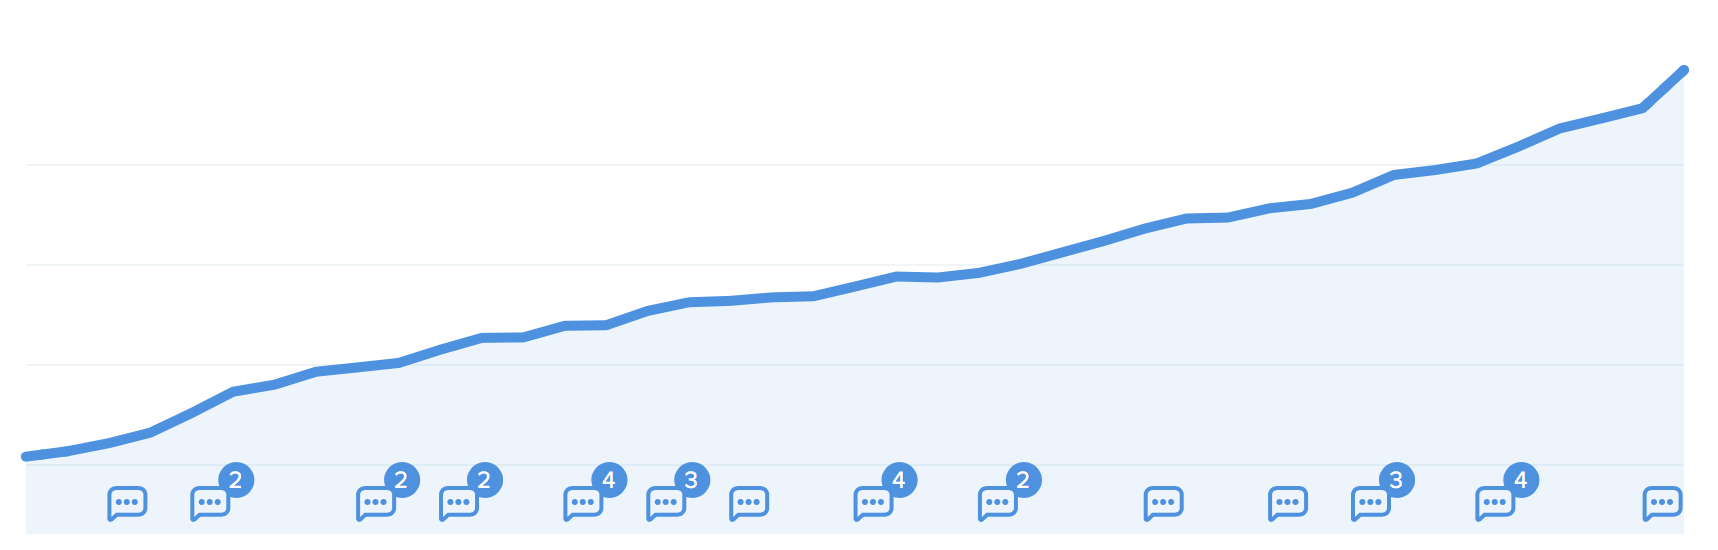 Baremetrics' MRR Growth